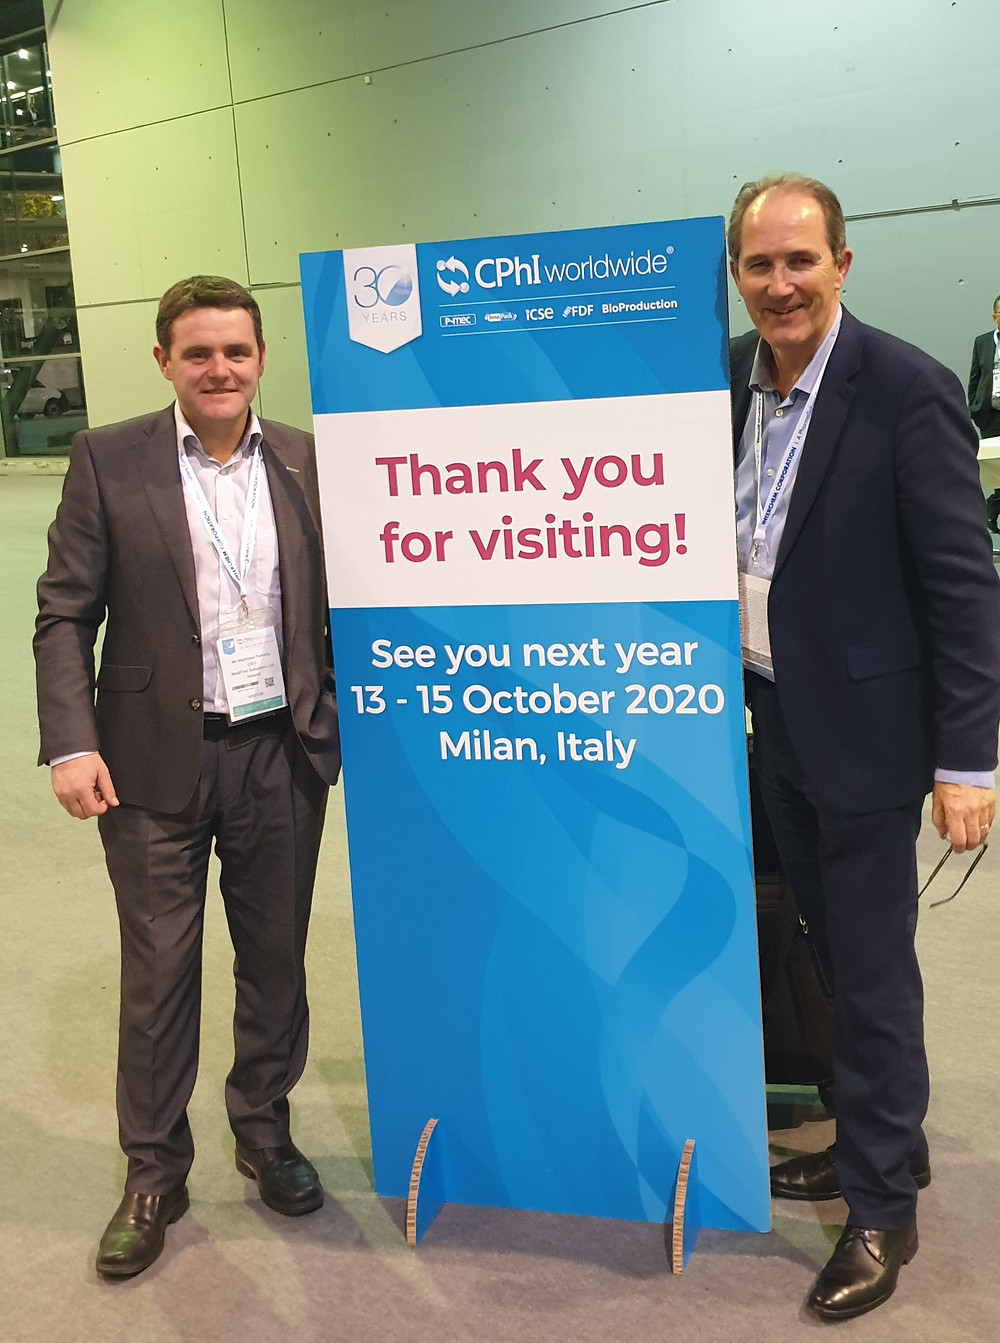 CPHI - A global meeting in Europe